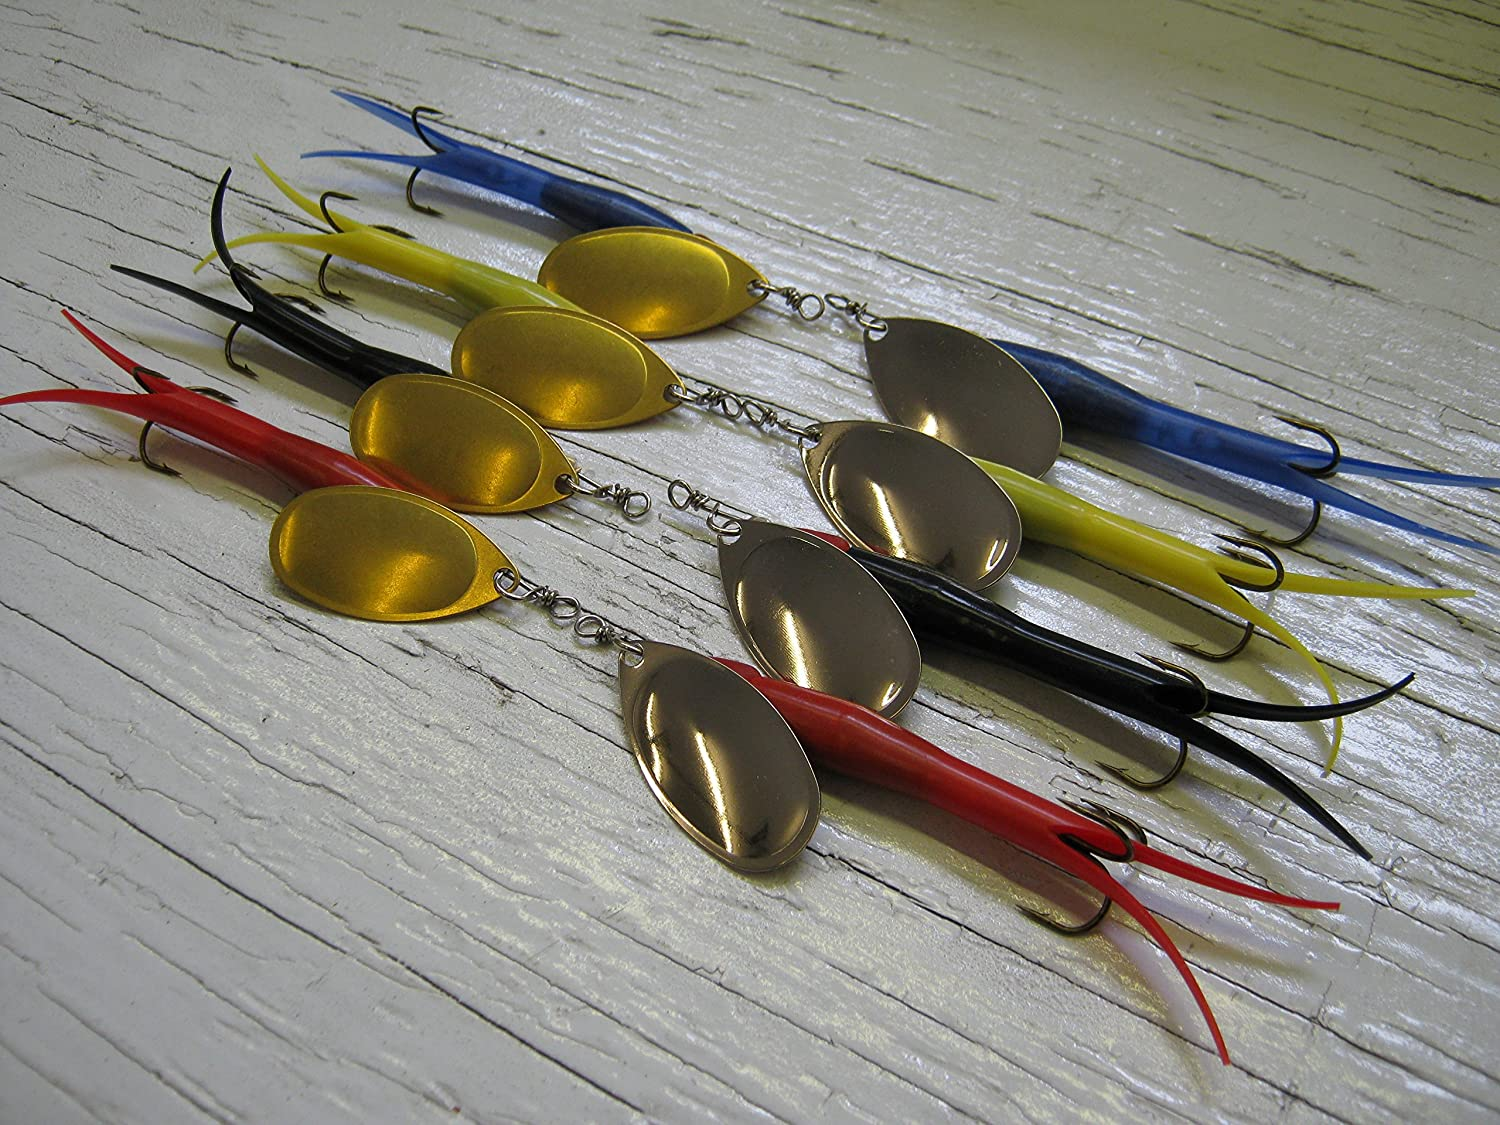 (A8) Flying C Approx 15g #4 French Blade, 8 Items Mixed Colour Body Red Black Blue Yellow Flytec Fishing NI